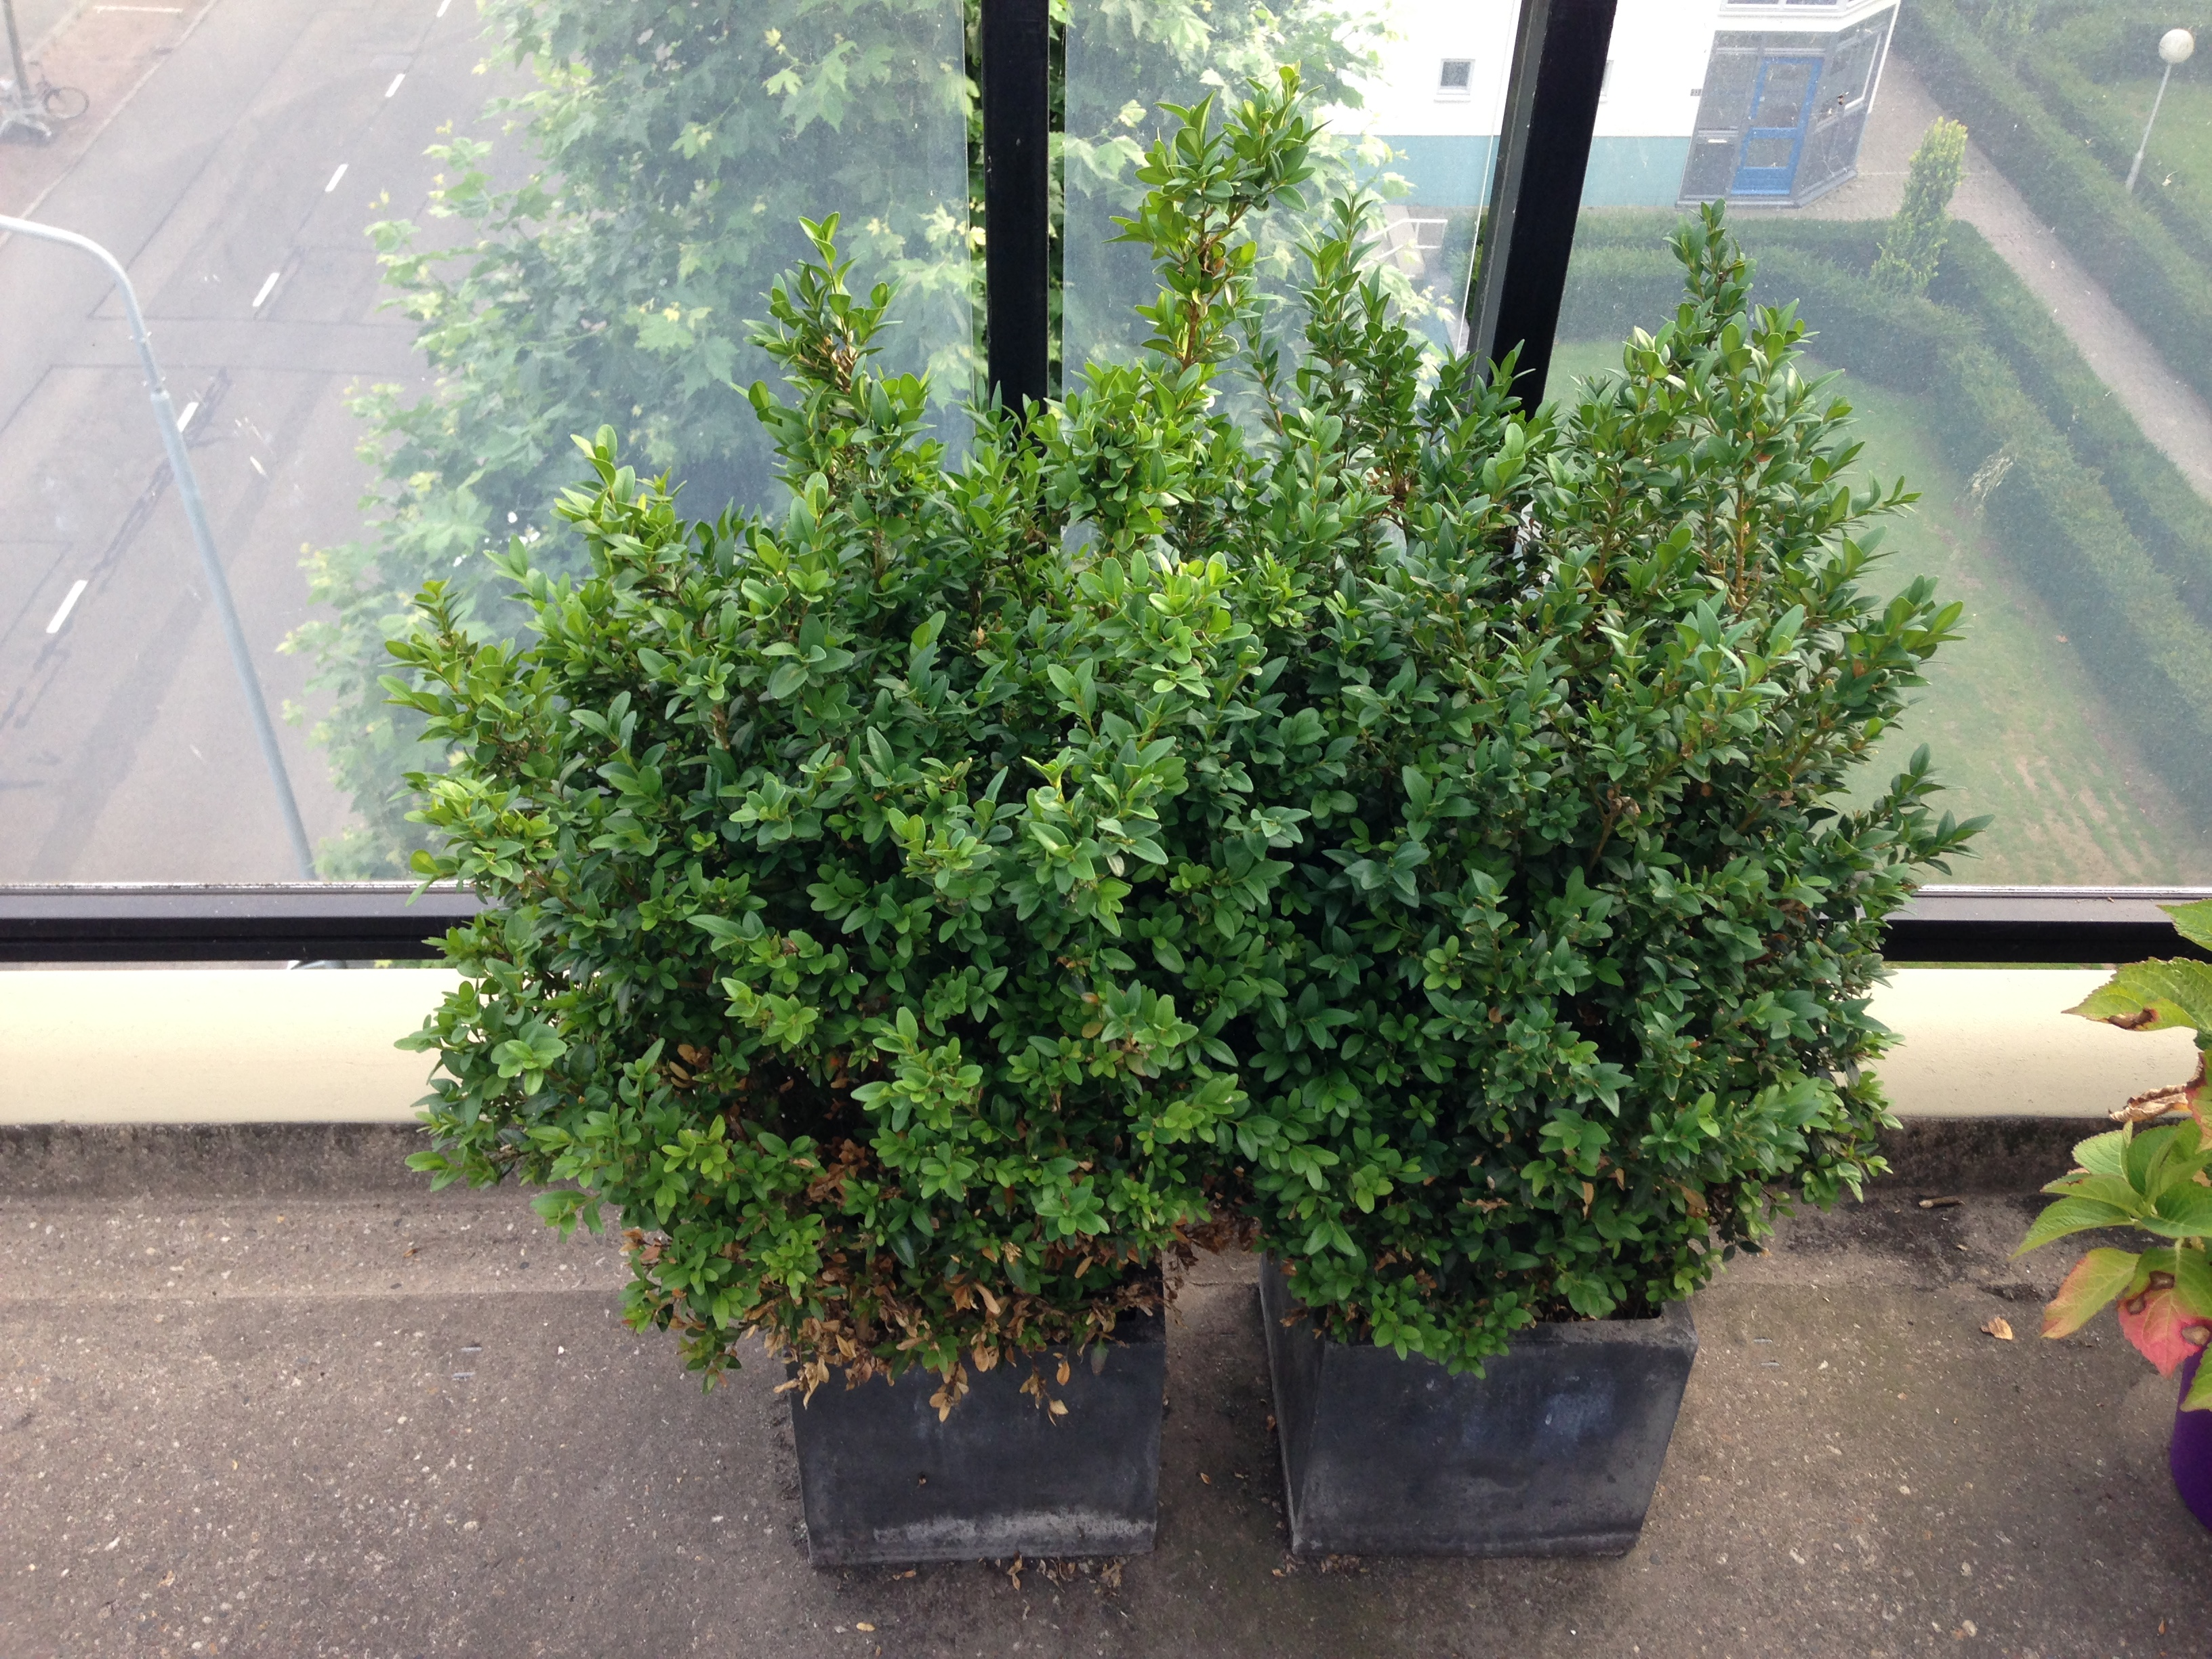 What's on mama's mind balkon buxus